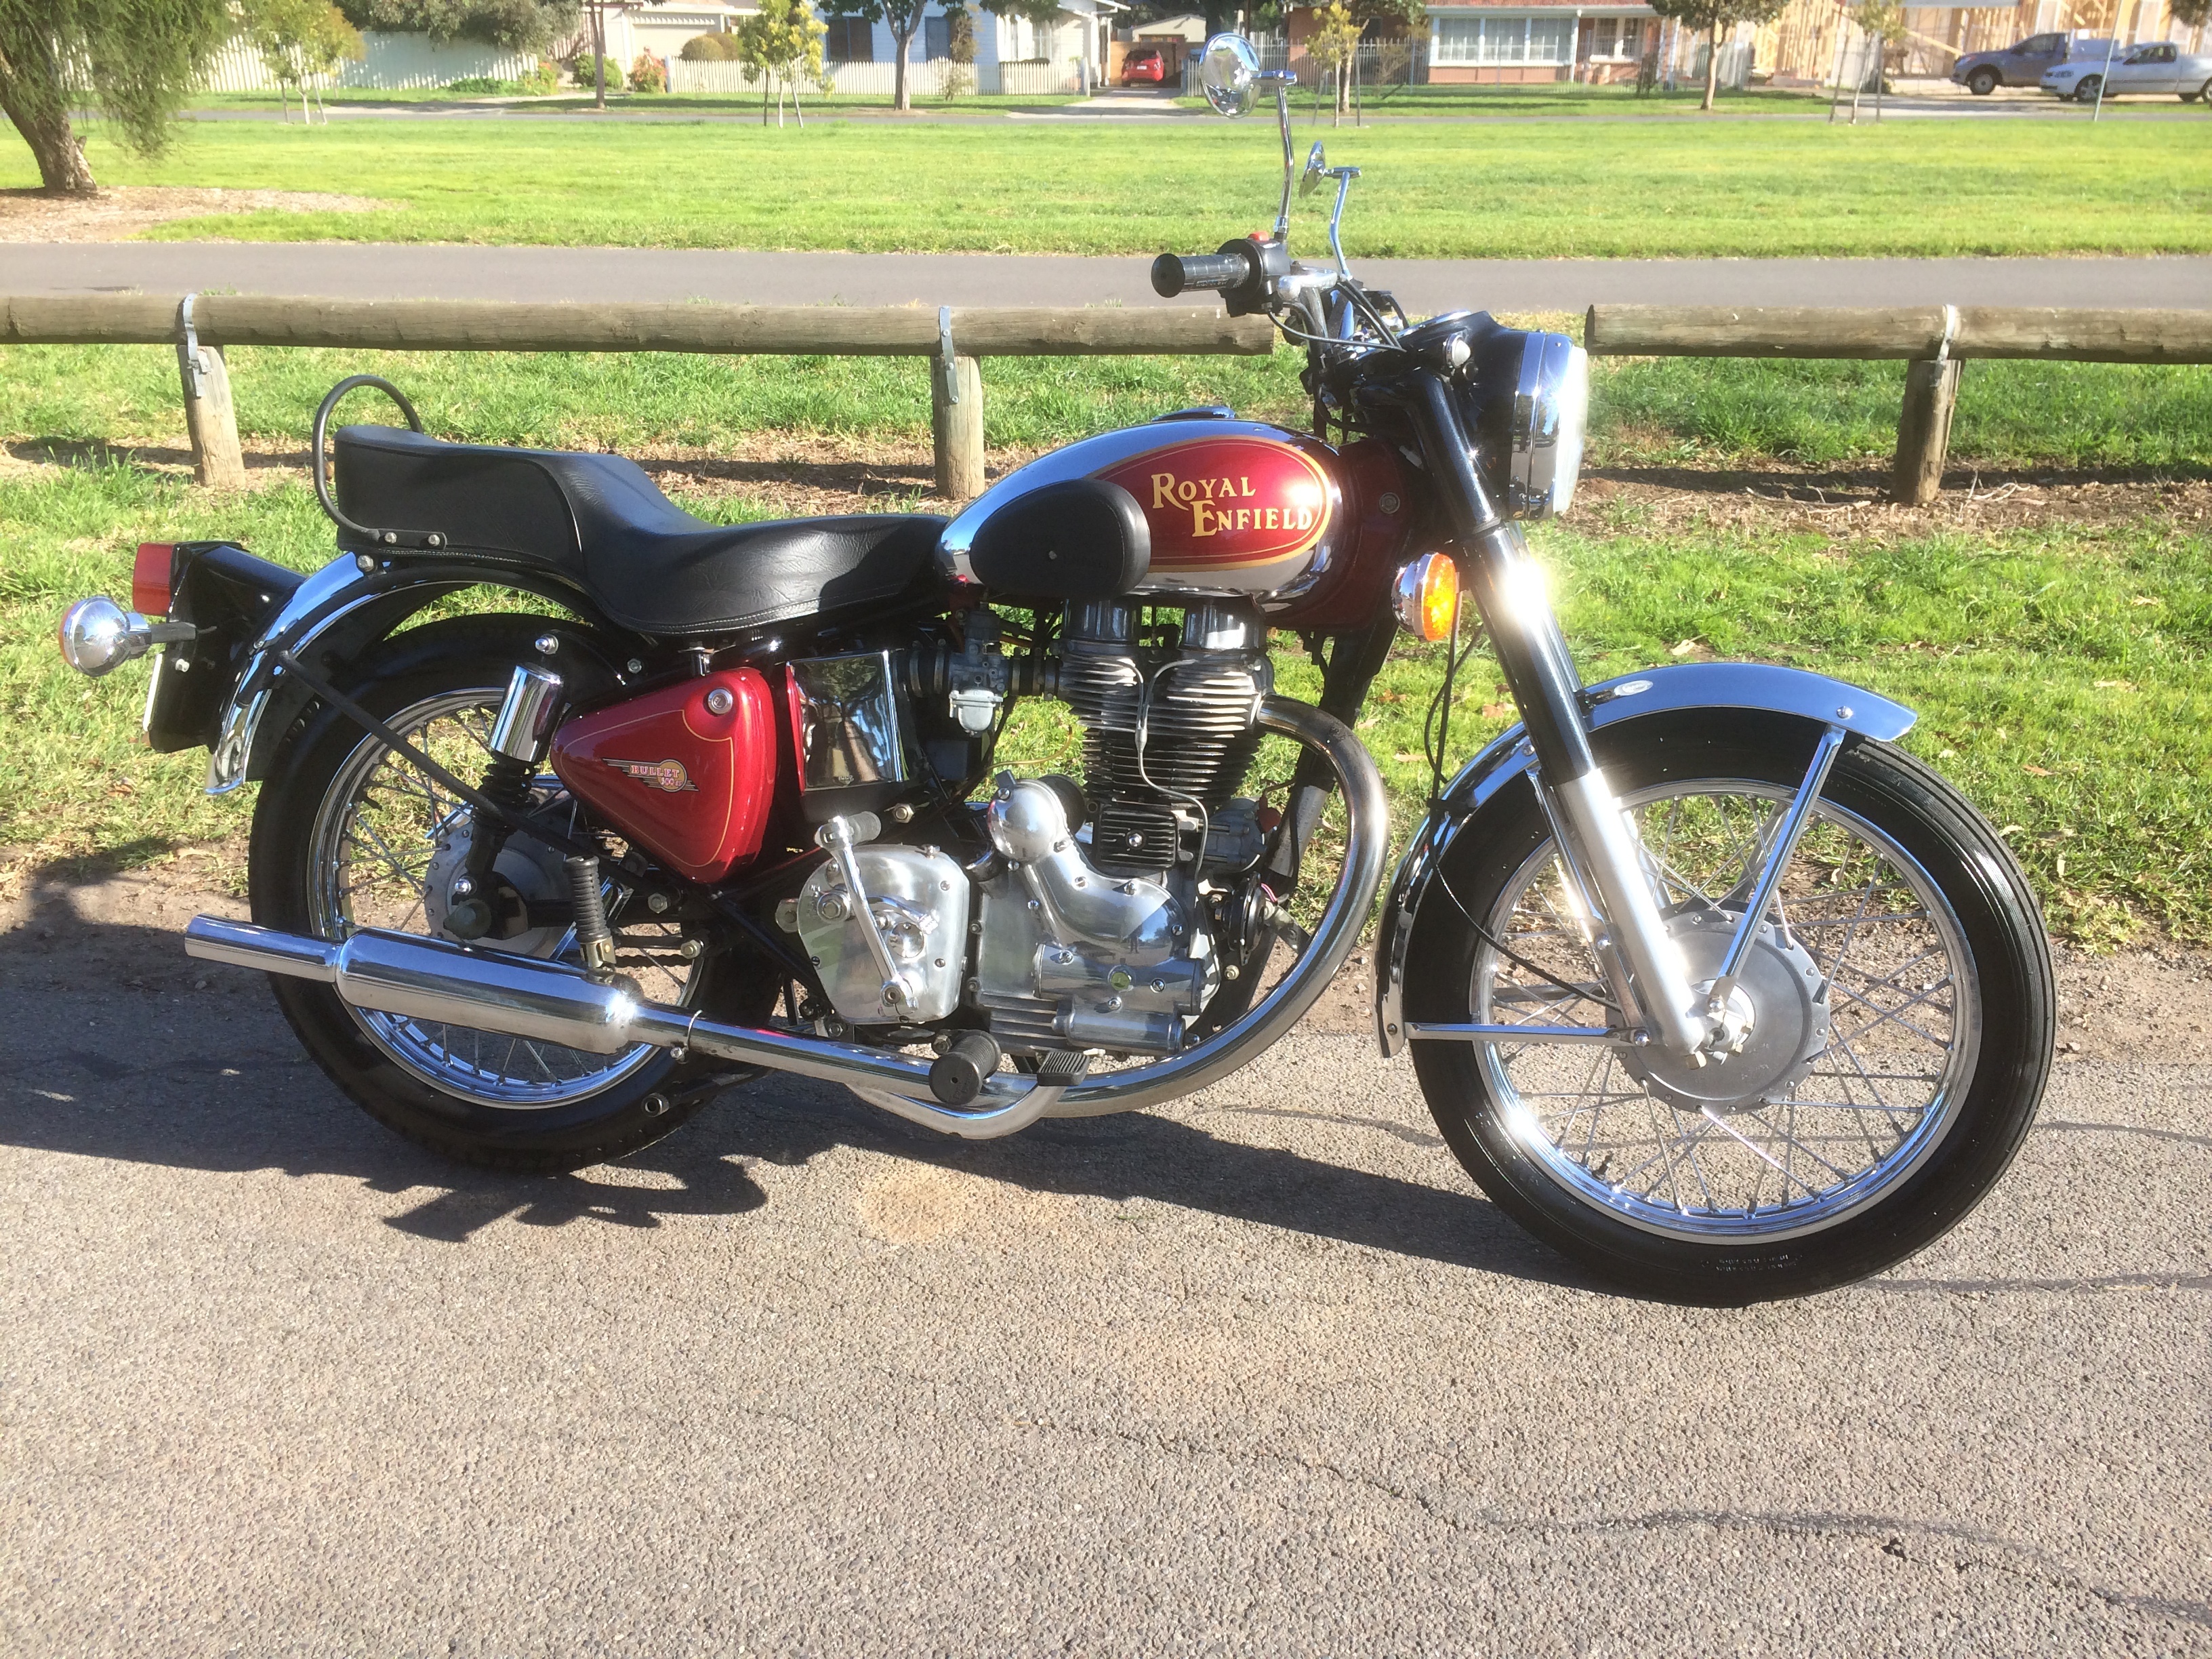 Royal Enfield Bullet 350 Army 2000 images #122940